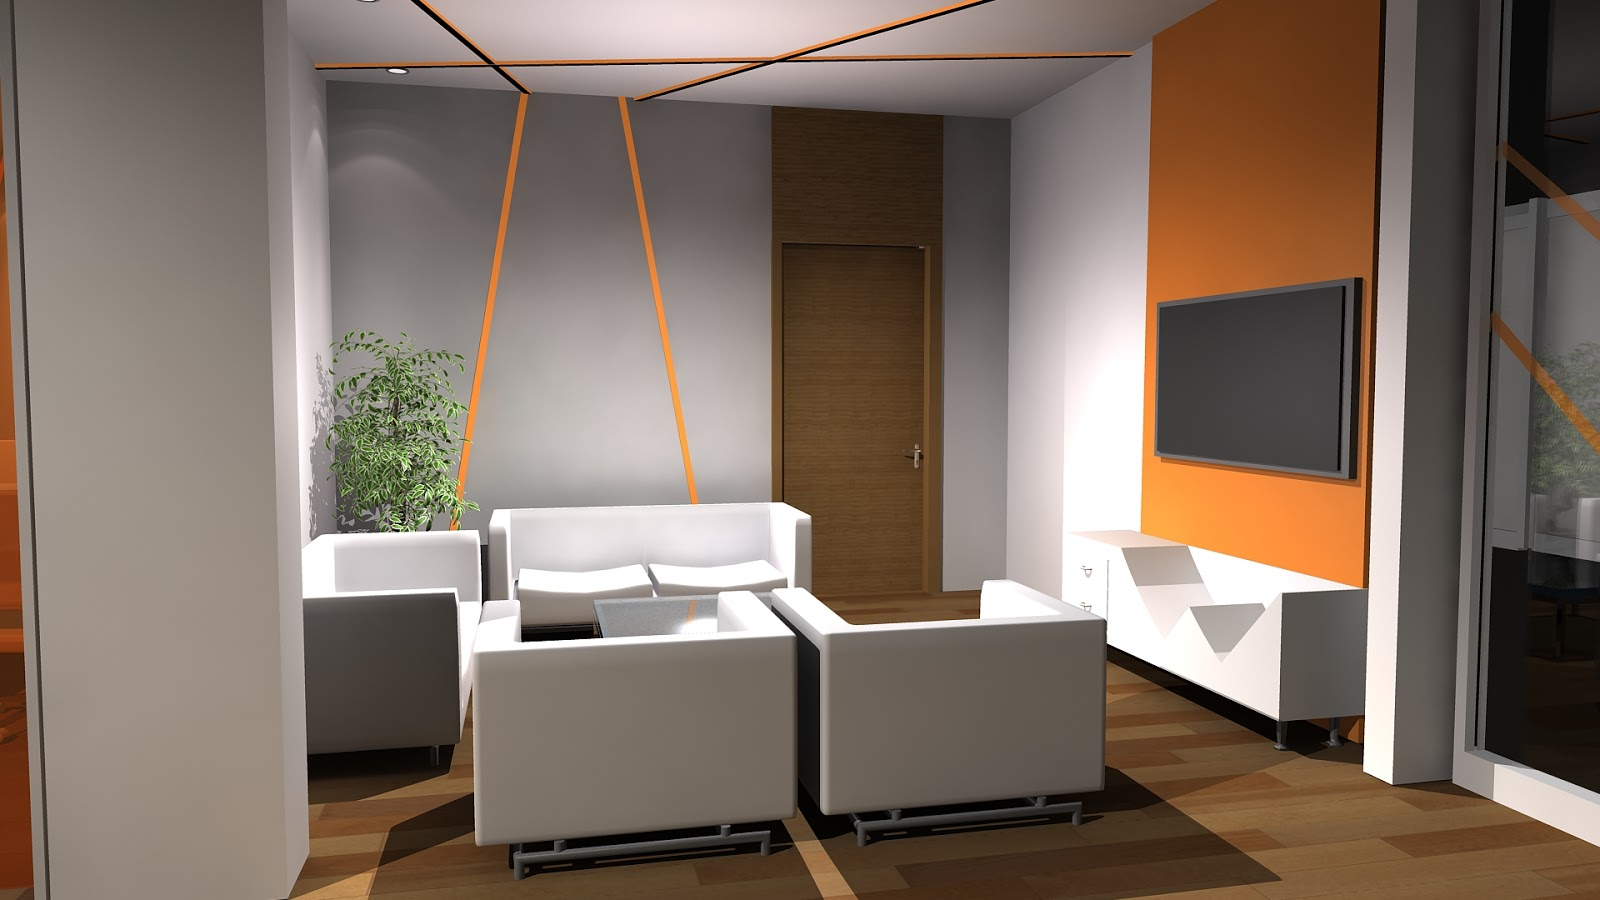 Sajid designer interior design office 3ds max for Room design 3ds max